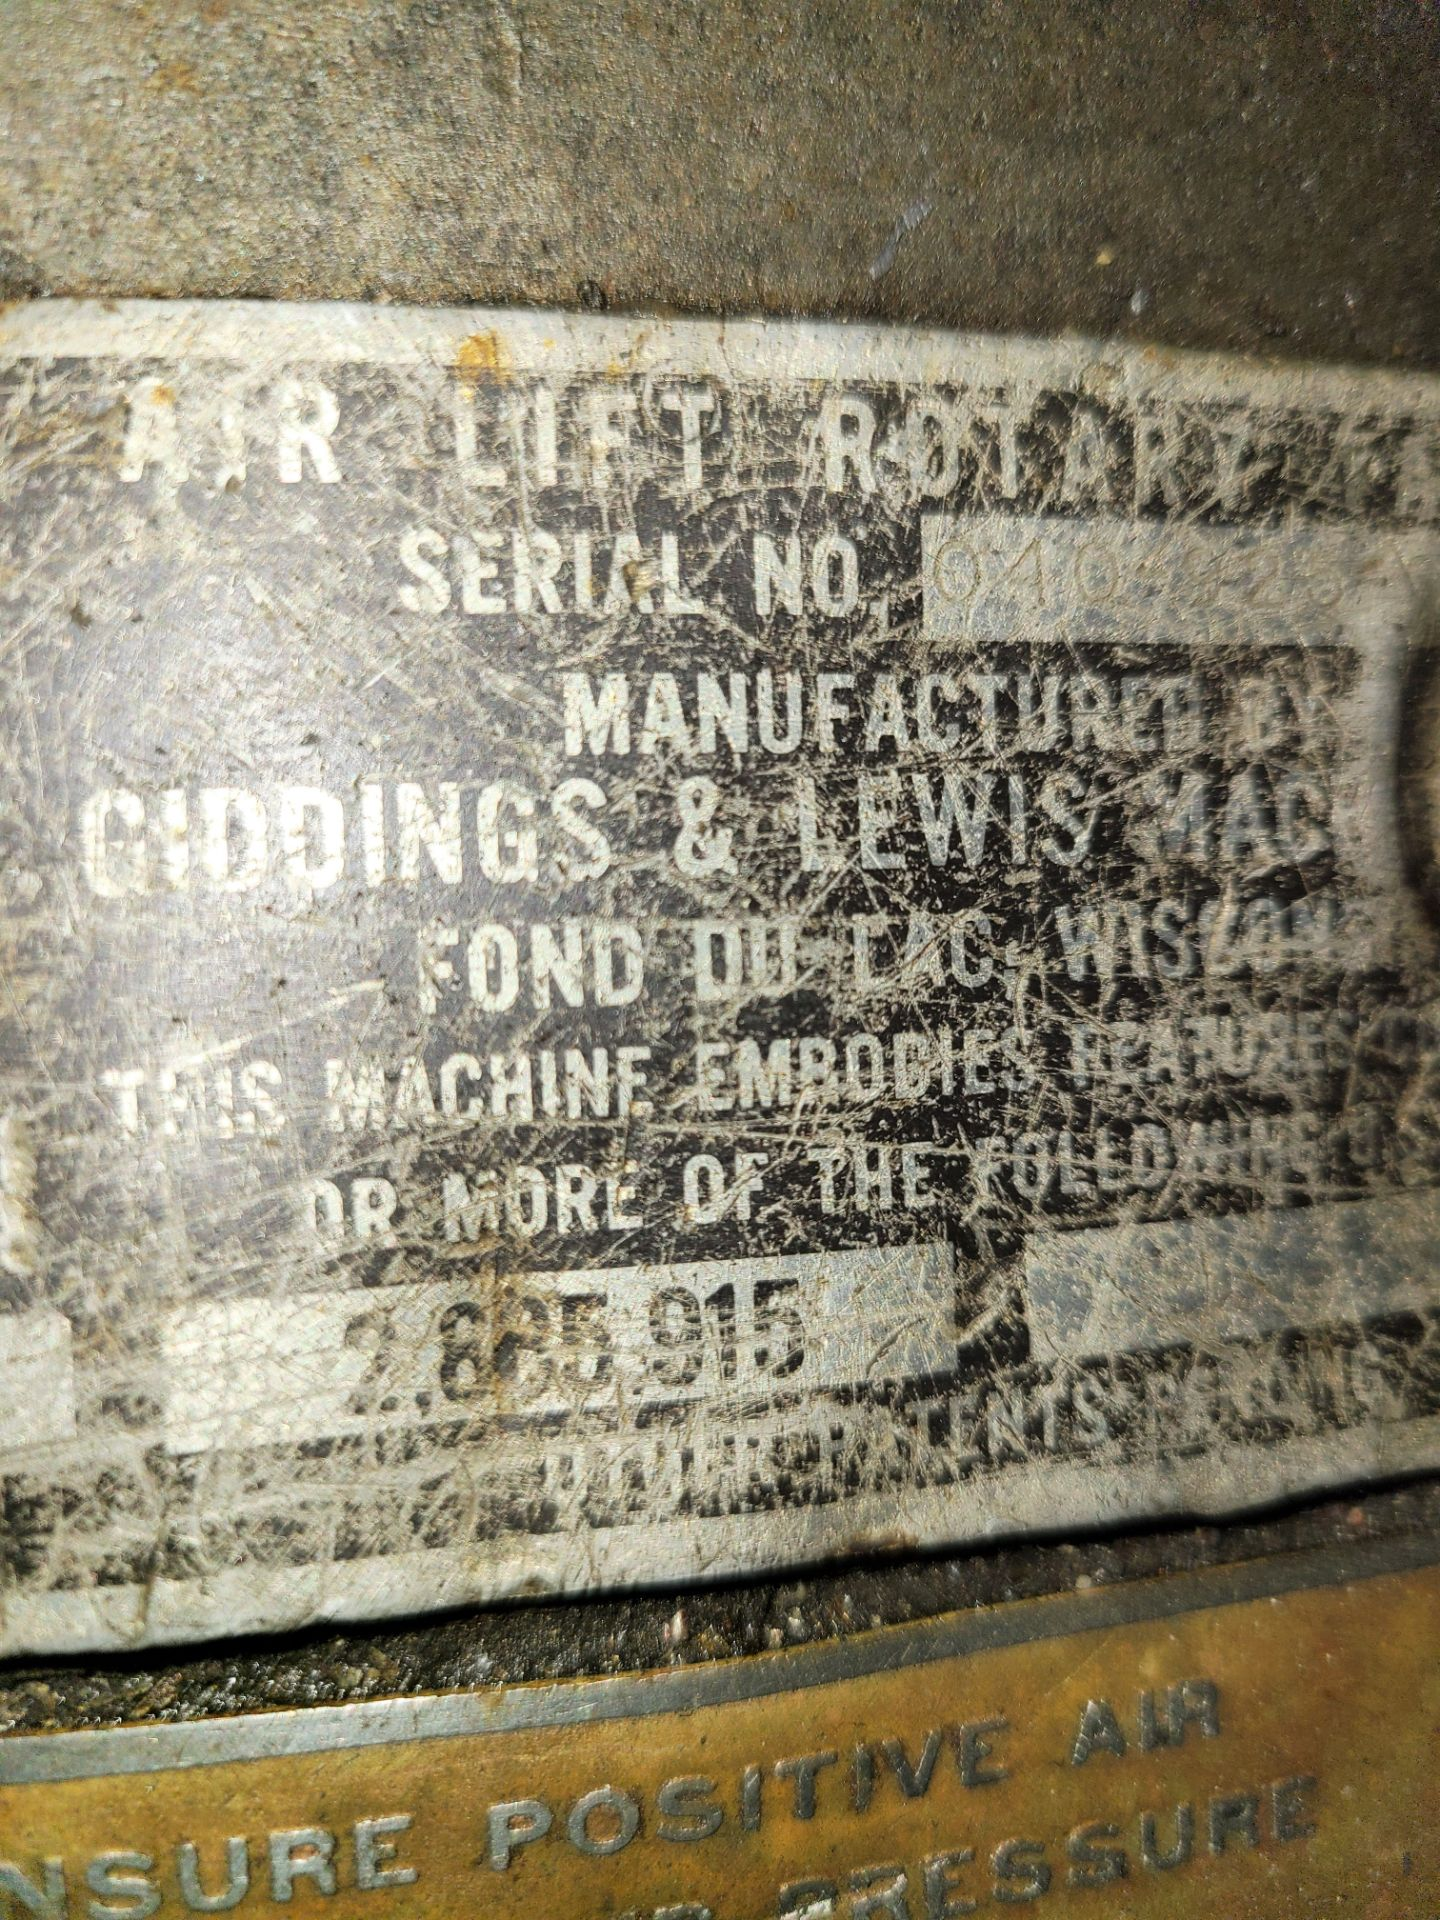 """48"""" X 30"""" GIDDING AND LEWIS AIR LIFT ROTARY TABLE - Image 3 of 3"""